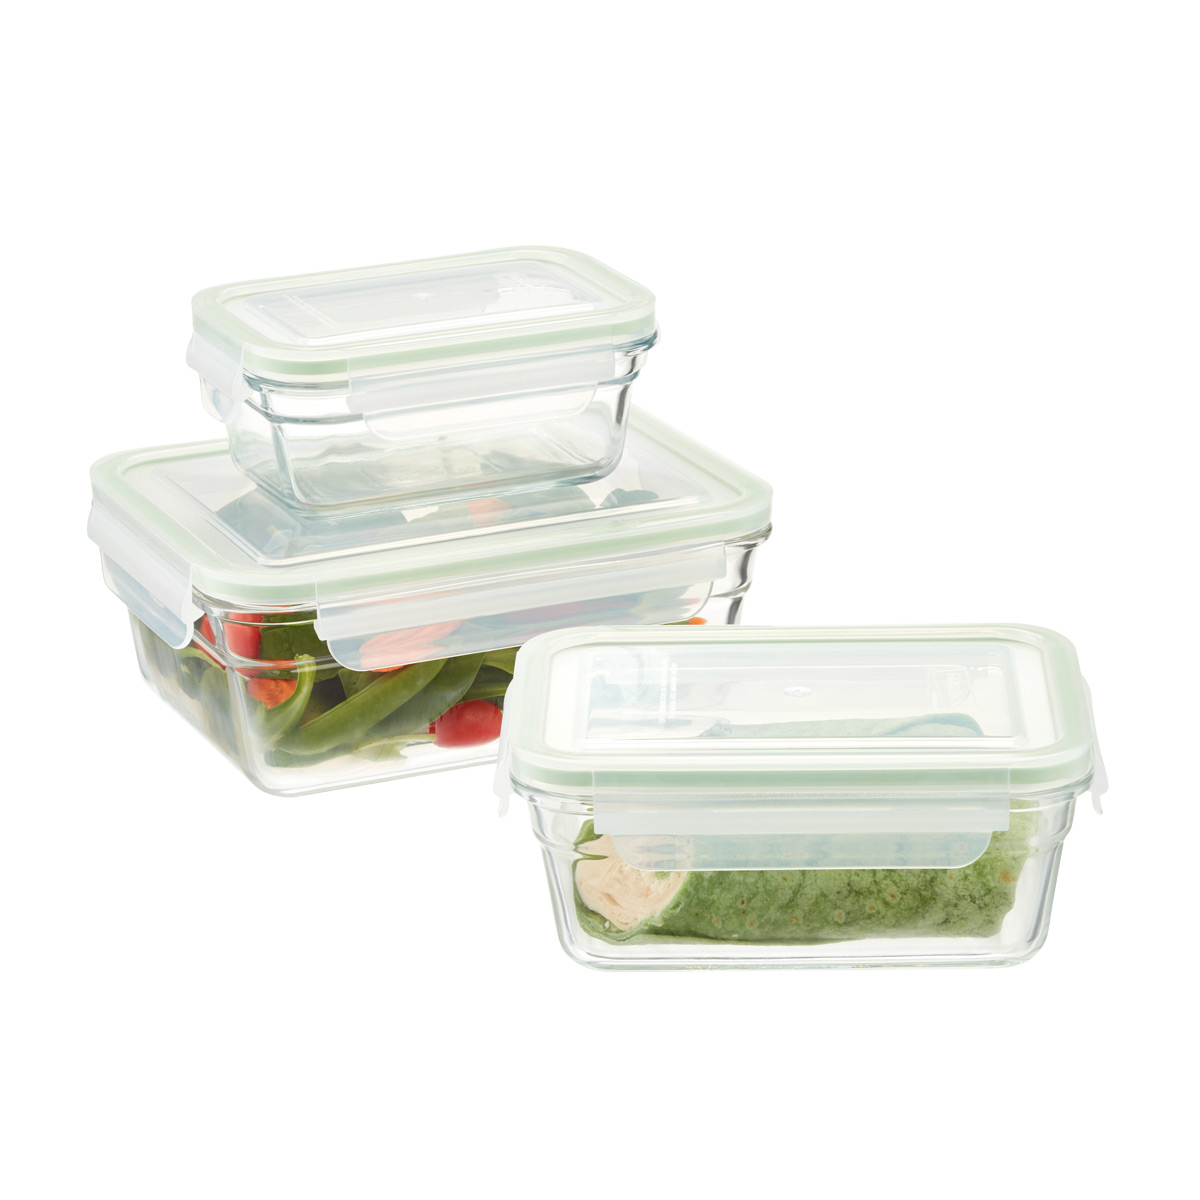 Glasslock Rectangular Food Containers with Lids ...  sc 1 st  The Container Store & Glasslock Rectangular Food Containers with Lids | The Container Store